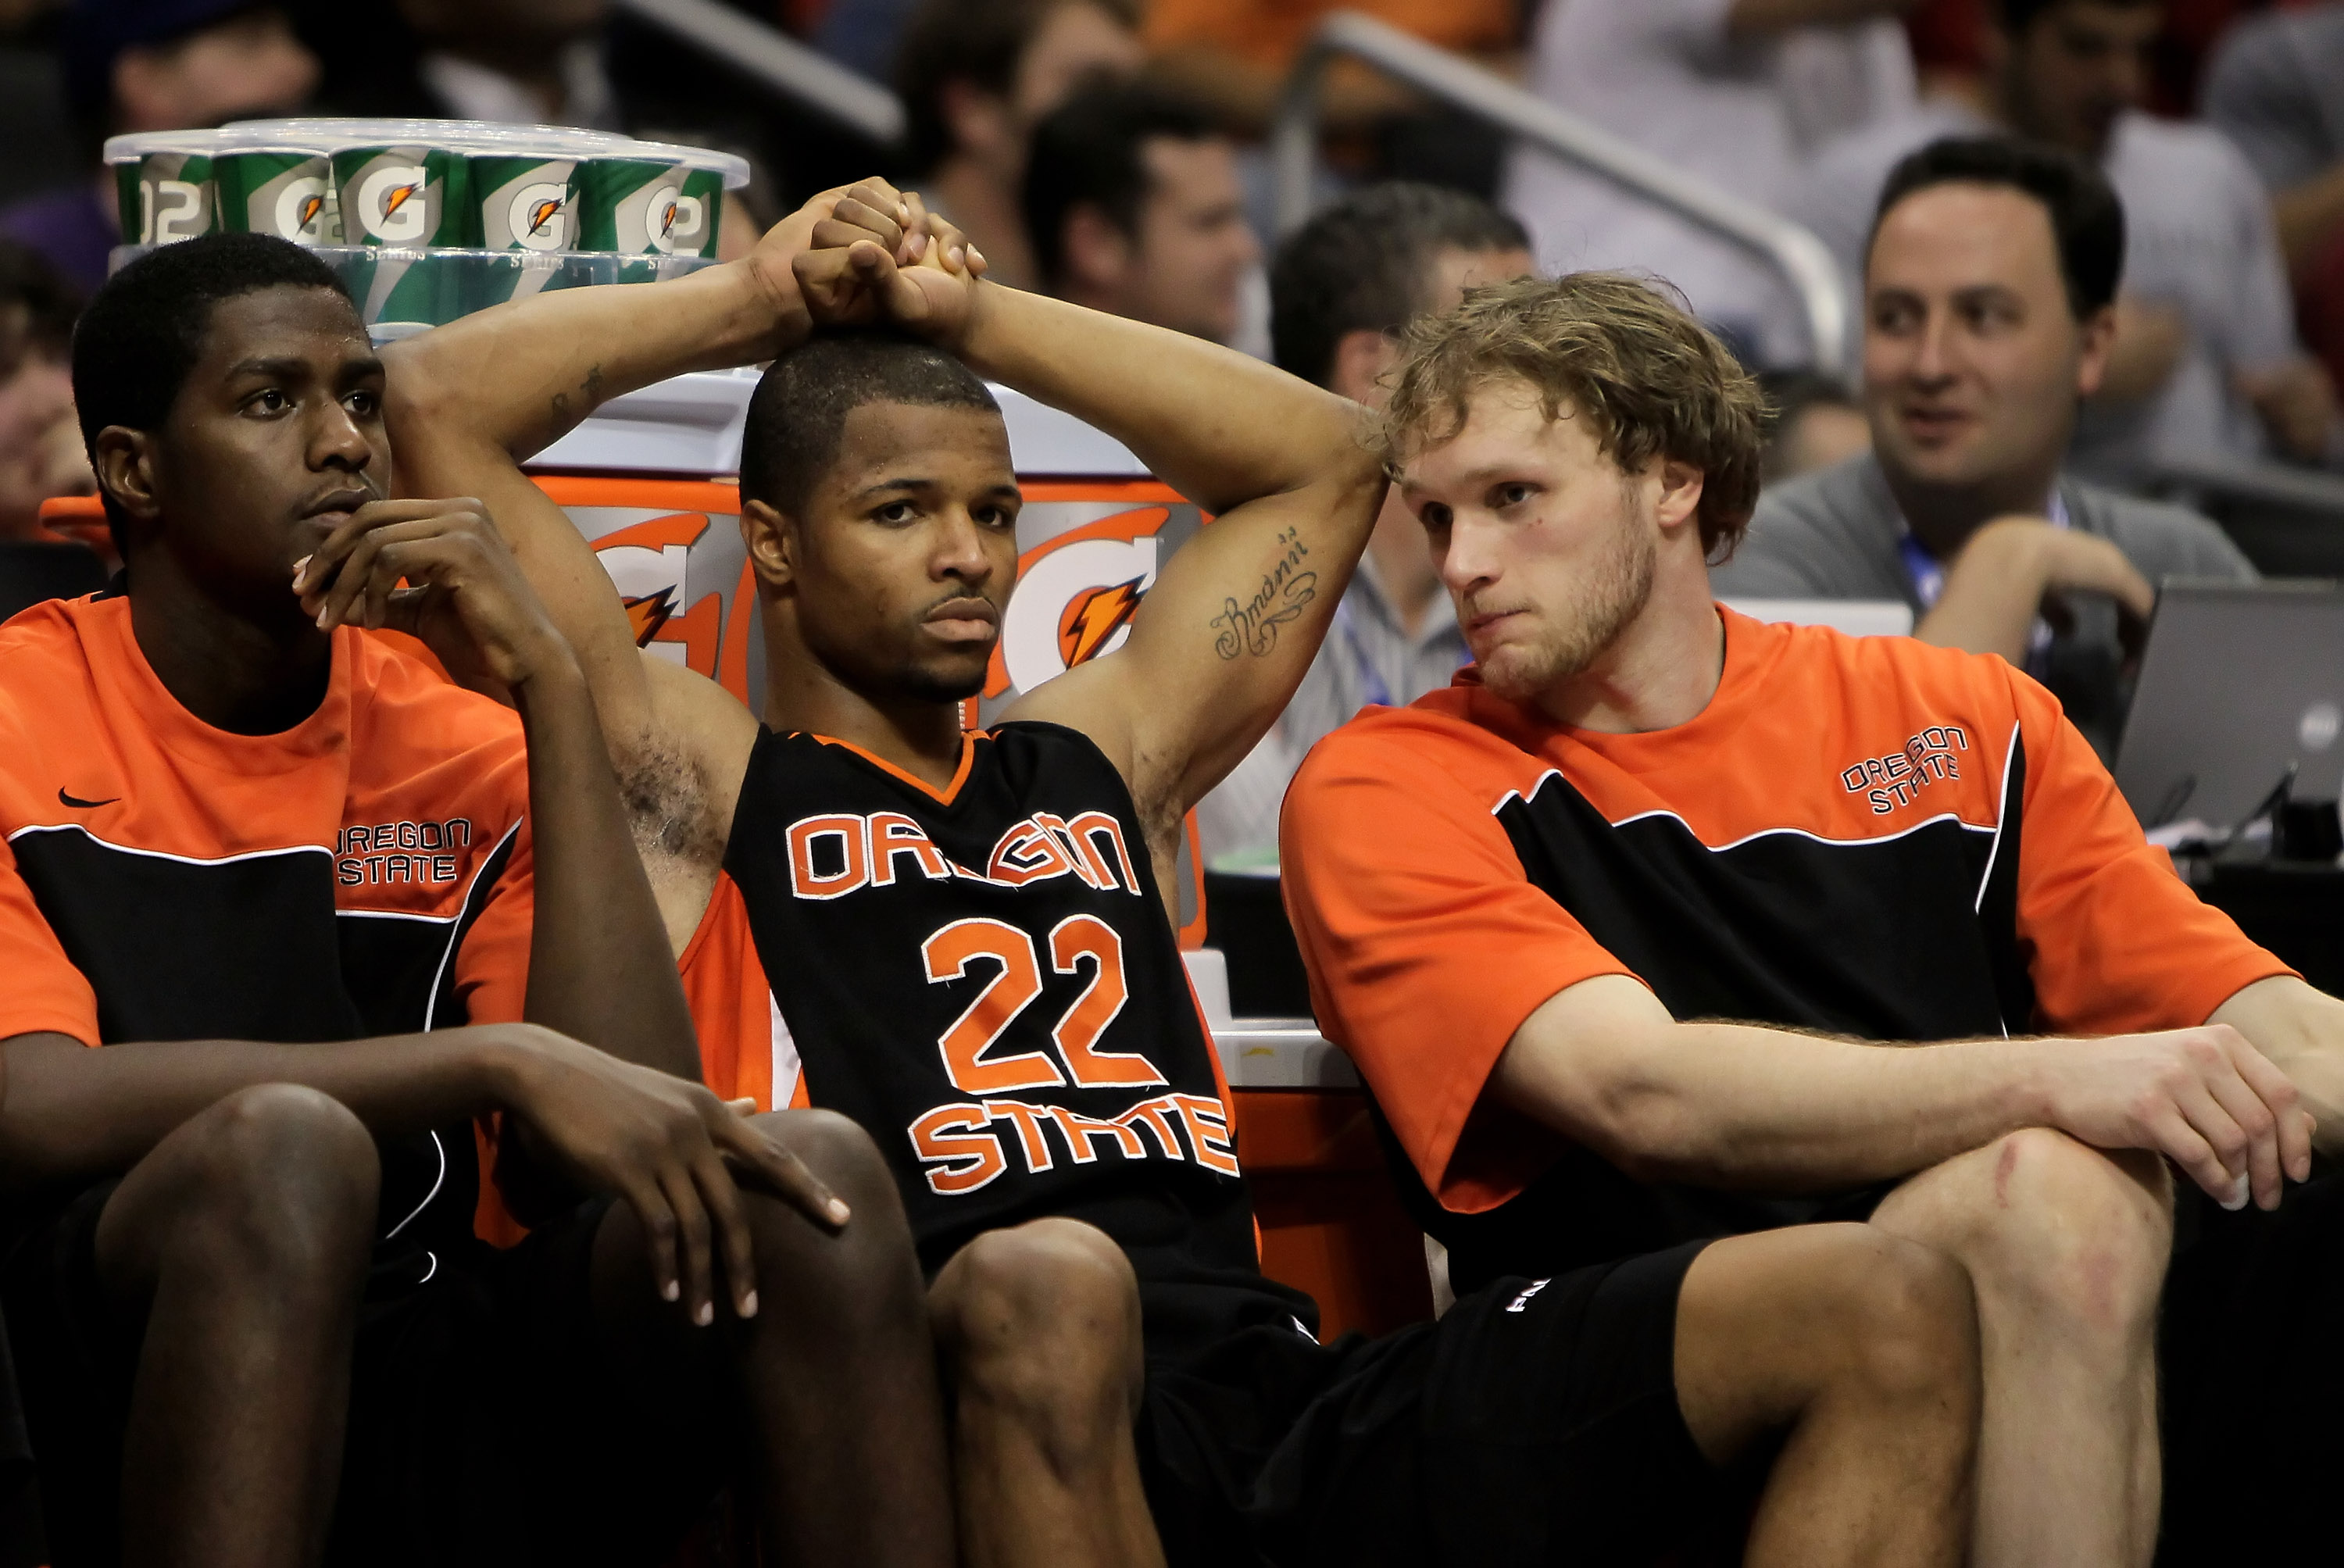 LOS ANGELES, CA - MARCH 11:  Calvin Haynes (center) #22 of the Oregon State Beavers is dejected against the Washington Huskies during the Quarterfinals of the Pac-10 Basketball Tournament at Staples Center on March 11, 2010 in Los Angeles, California. Was